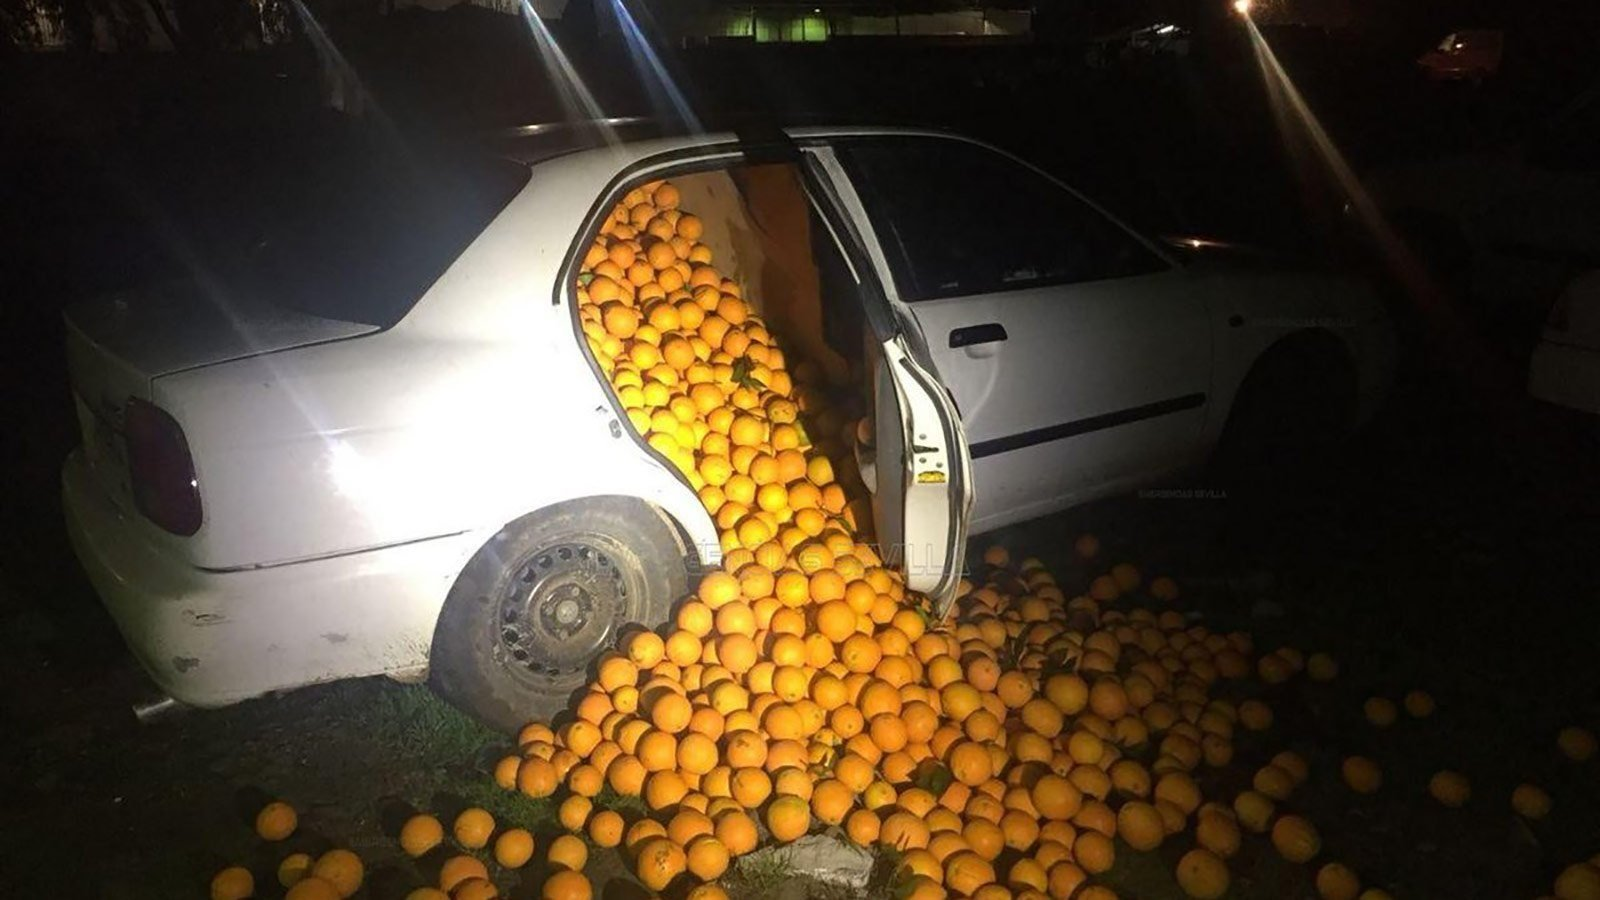 Thieves try to steal 4000kg of oranges